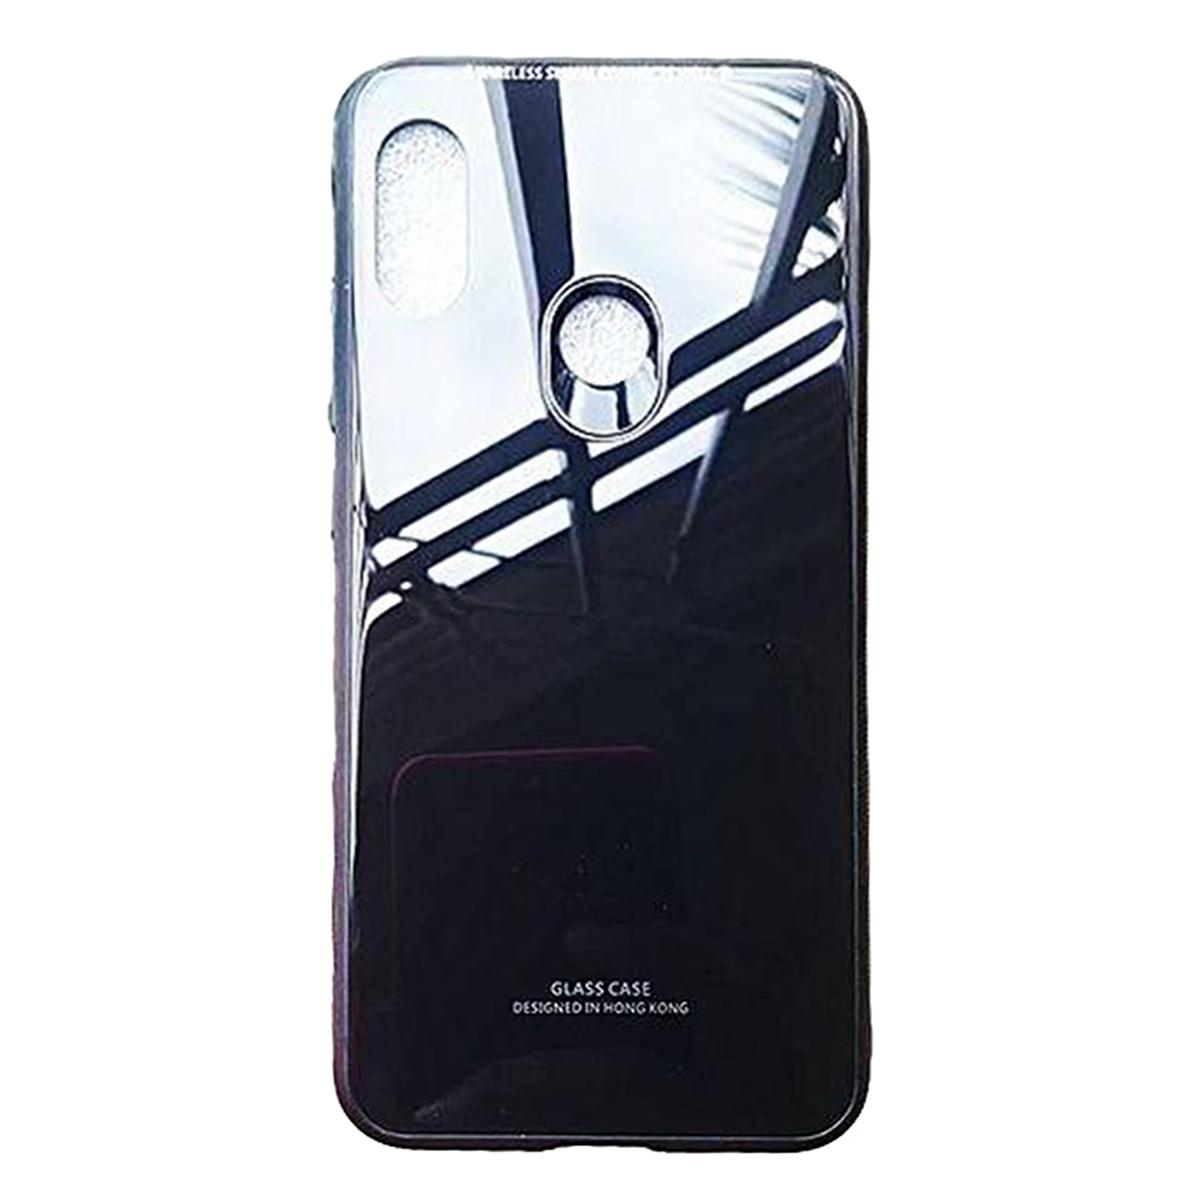 Mobile Phone Cover In Bangladesh At Best Price Case Xiaomi Redmi S2 Hardcase 360 Full Protective Tempered Glass Black